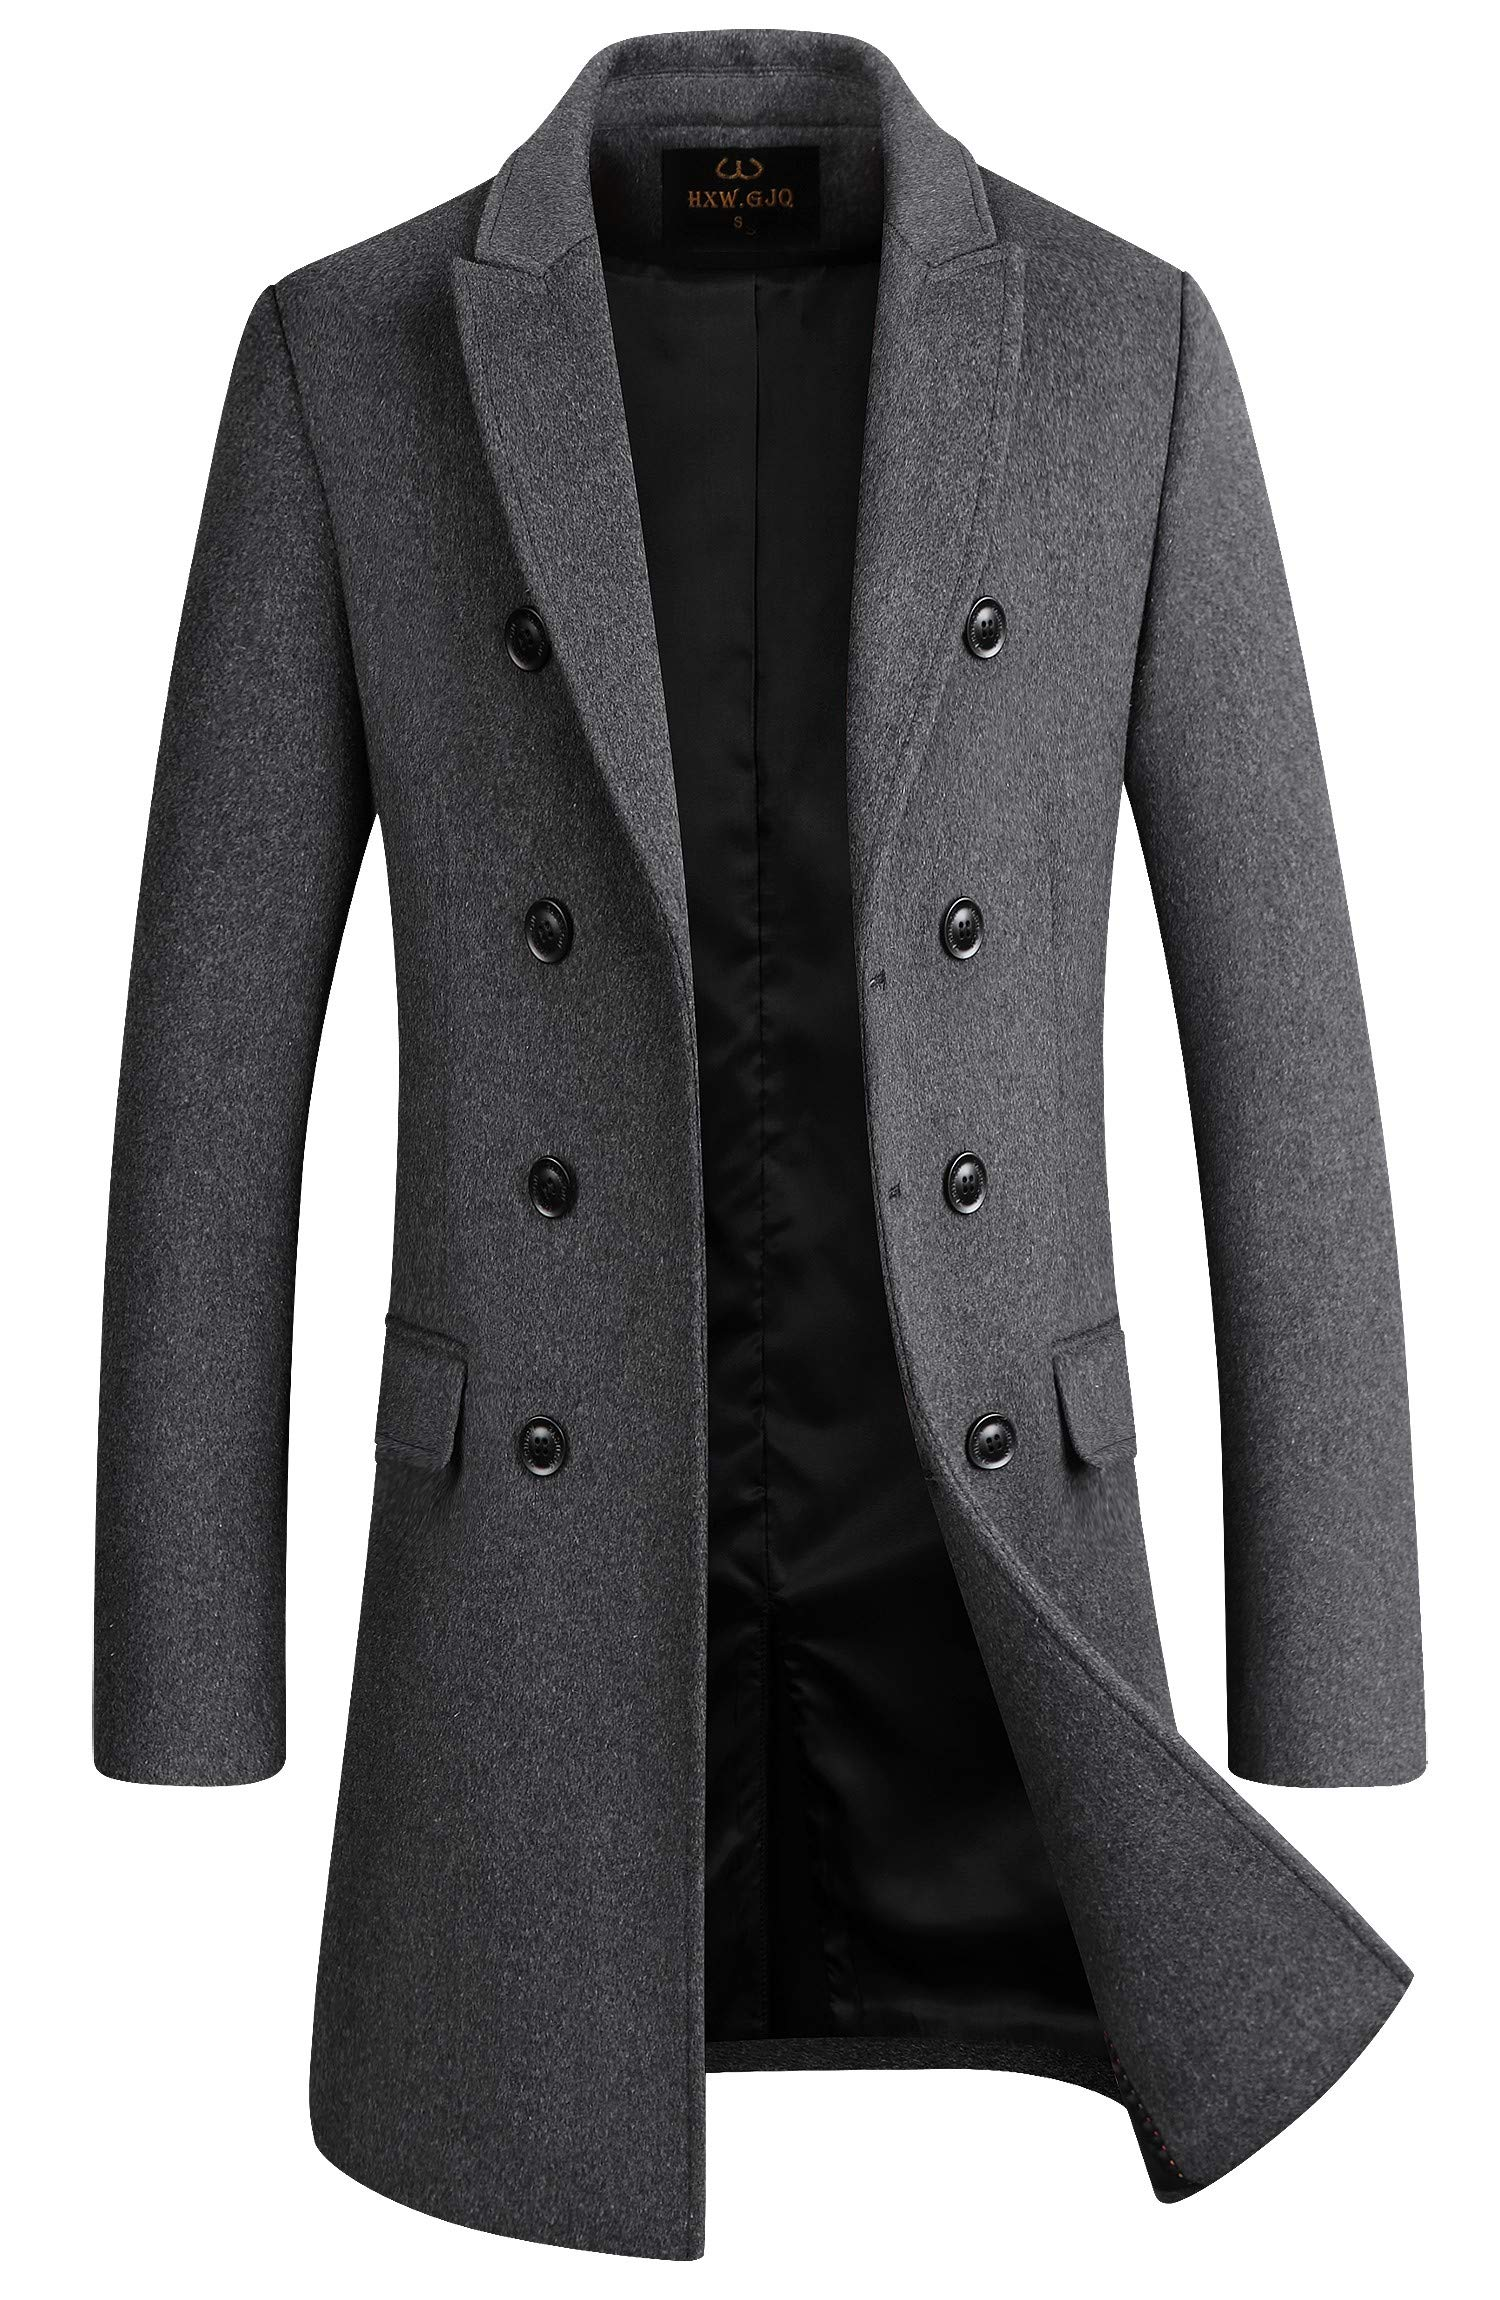 Men's Premium Wool Blend Double Breasted Long Pea Coat (Grey, Large) by HXW.GJQ